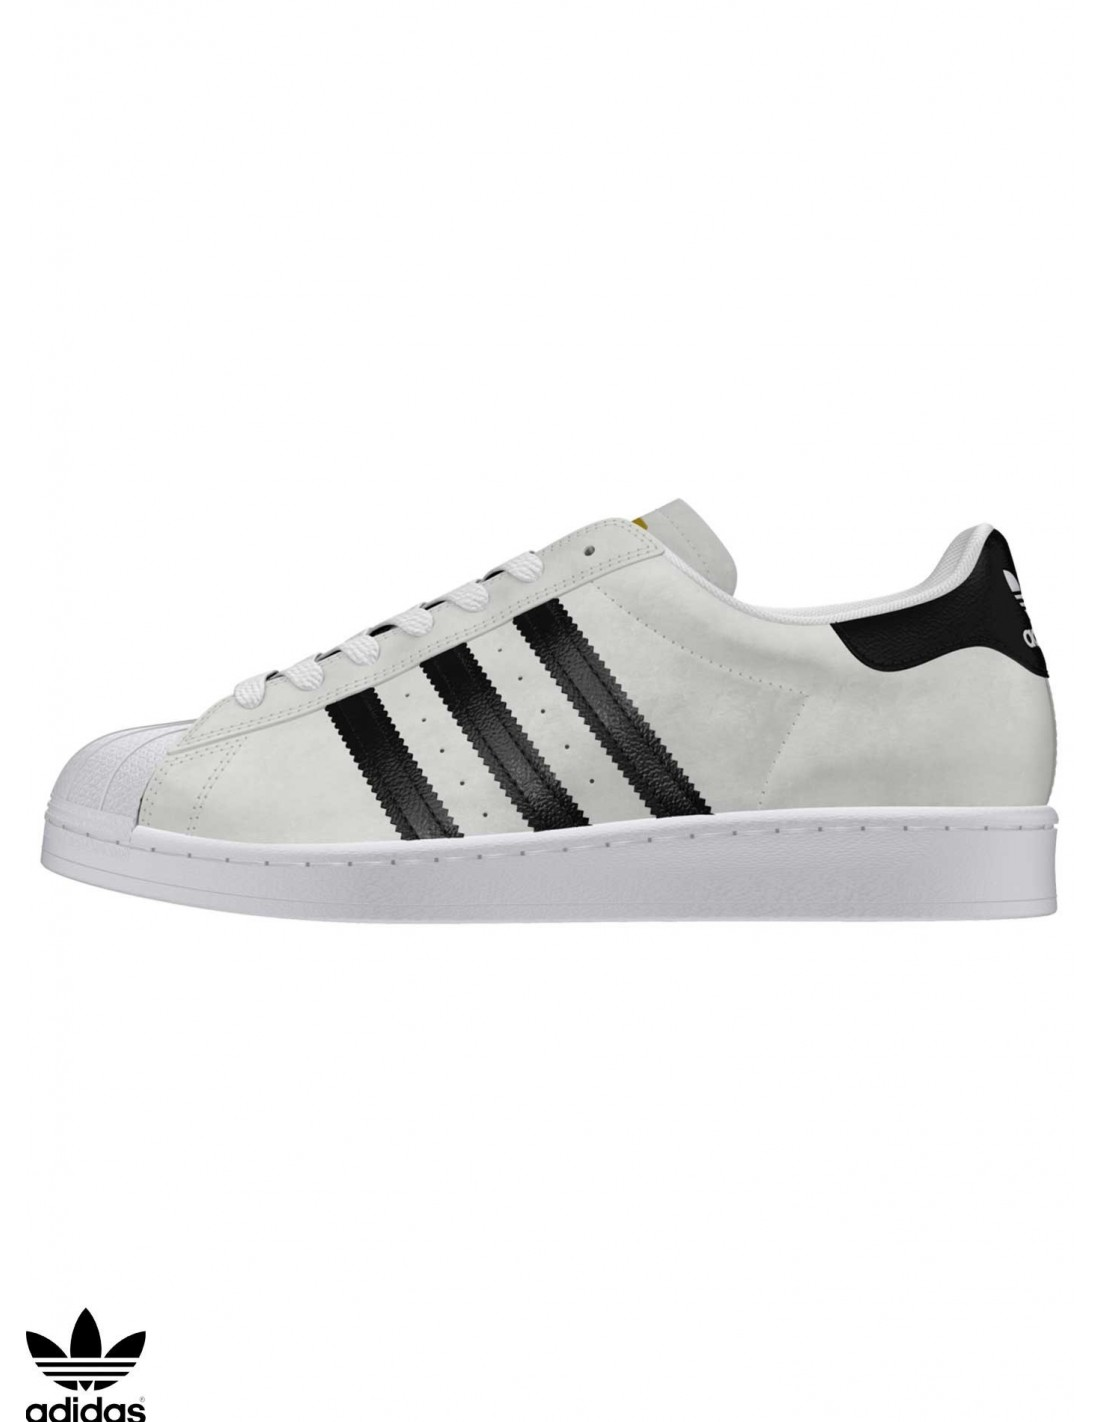 adidas chaussures skate